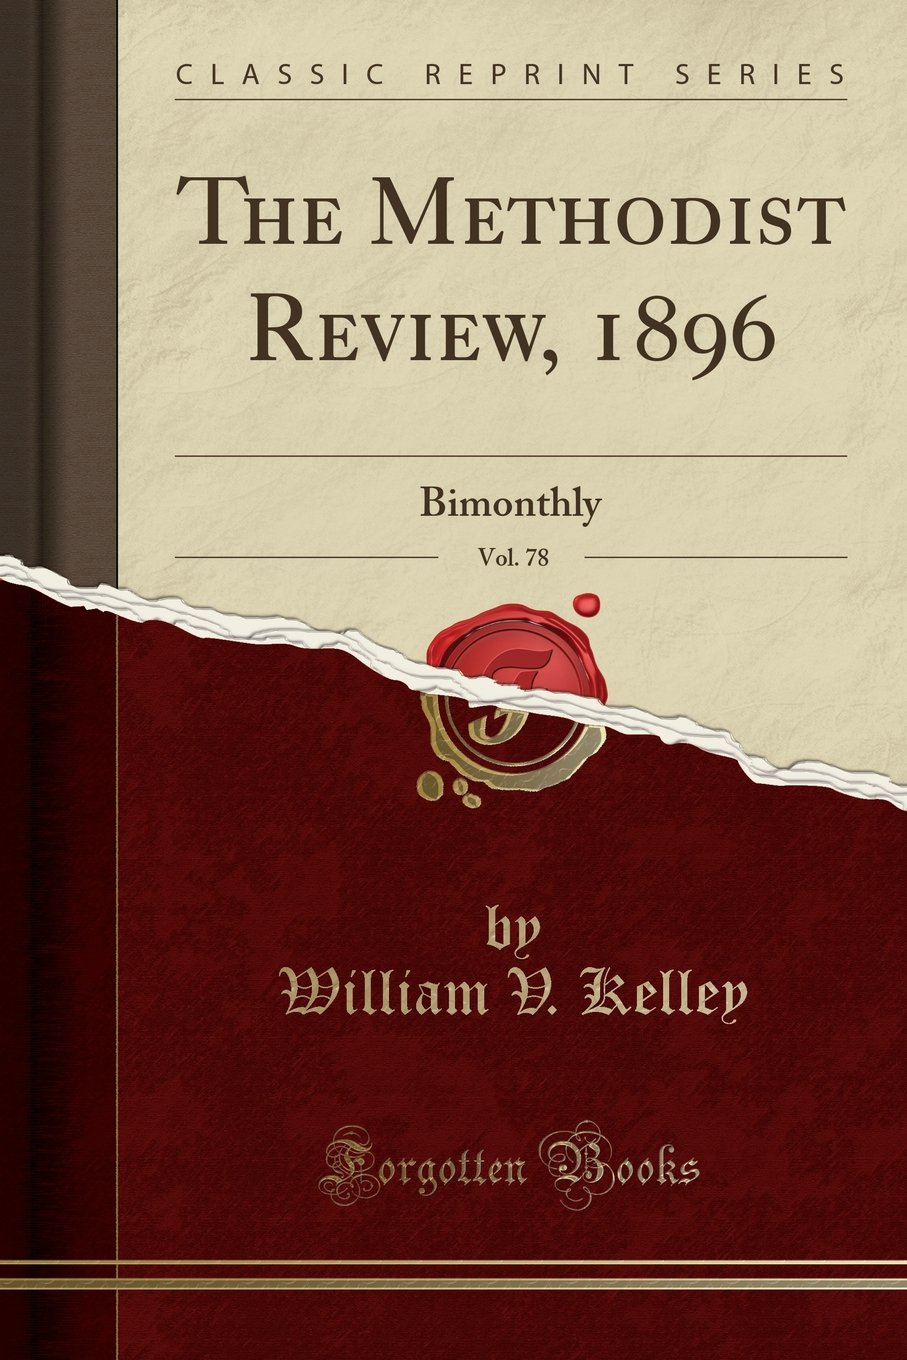 The Methodist Review, 1896, Vol. 78: Bimonthly (Classic Reprint) ebook